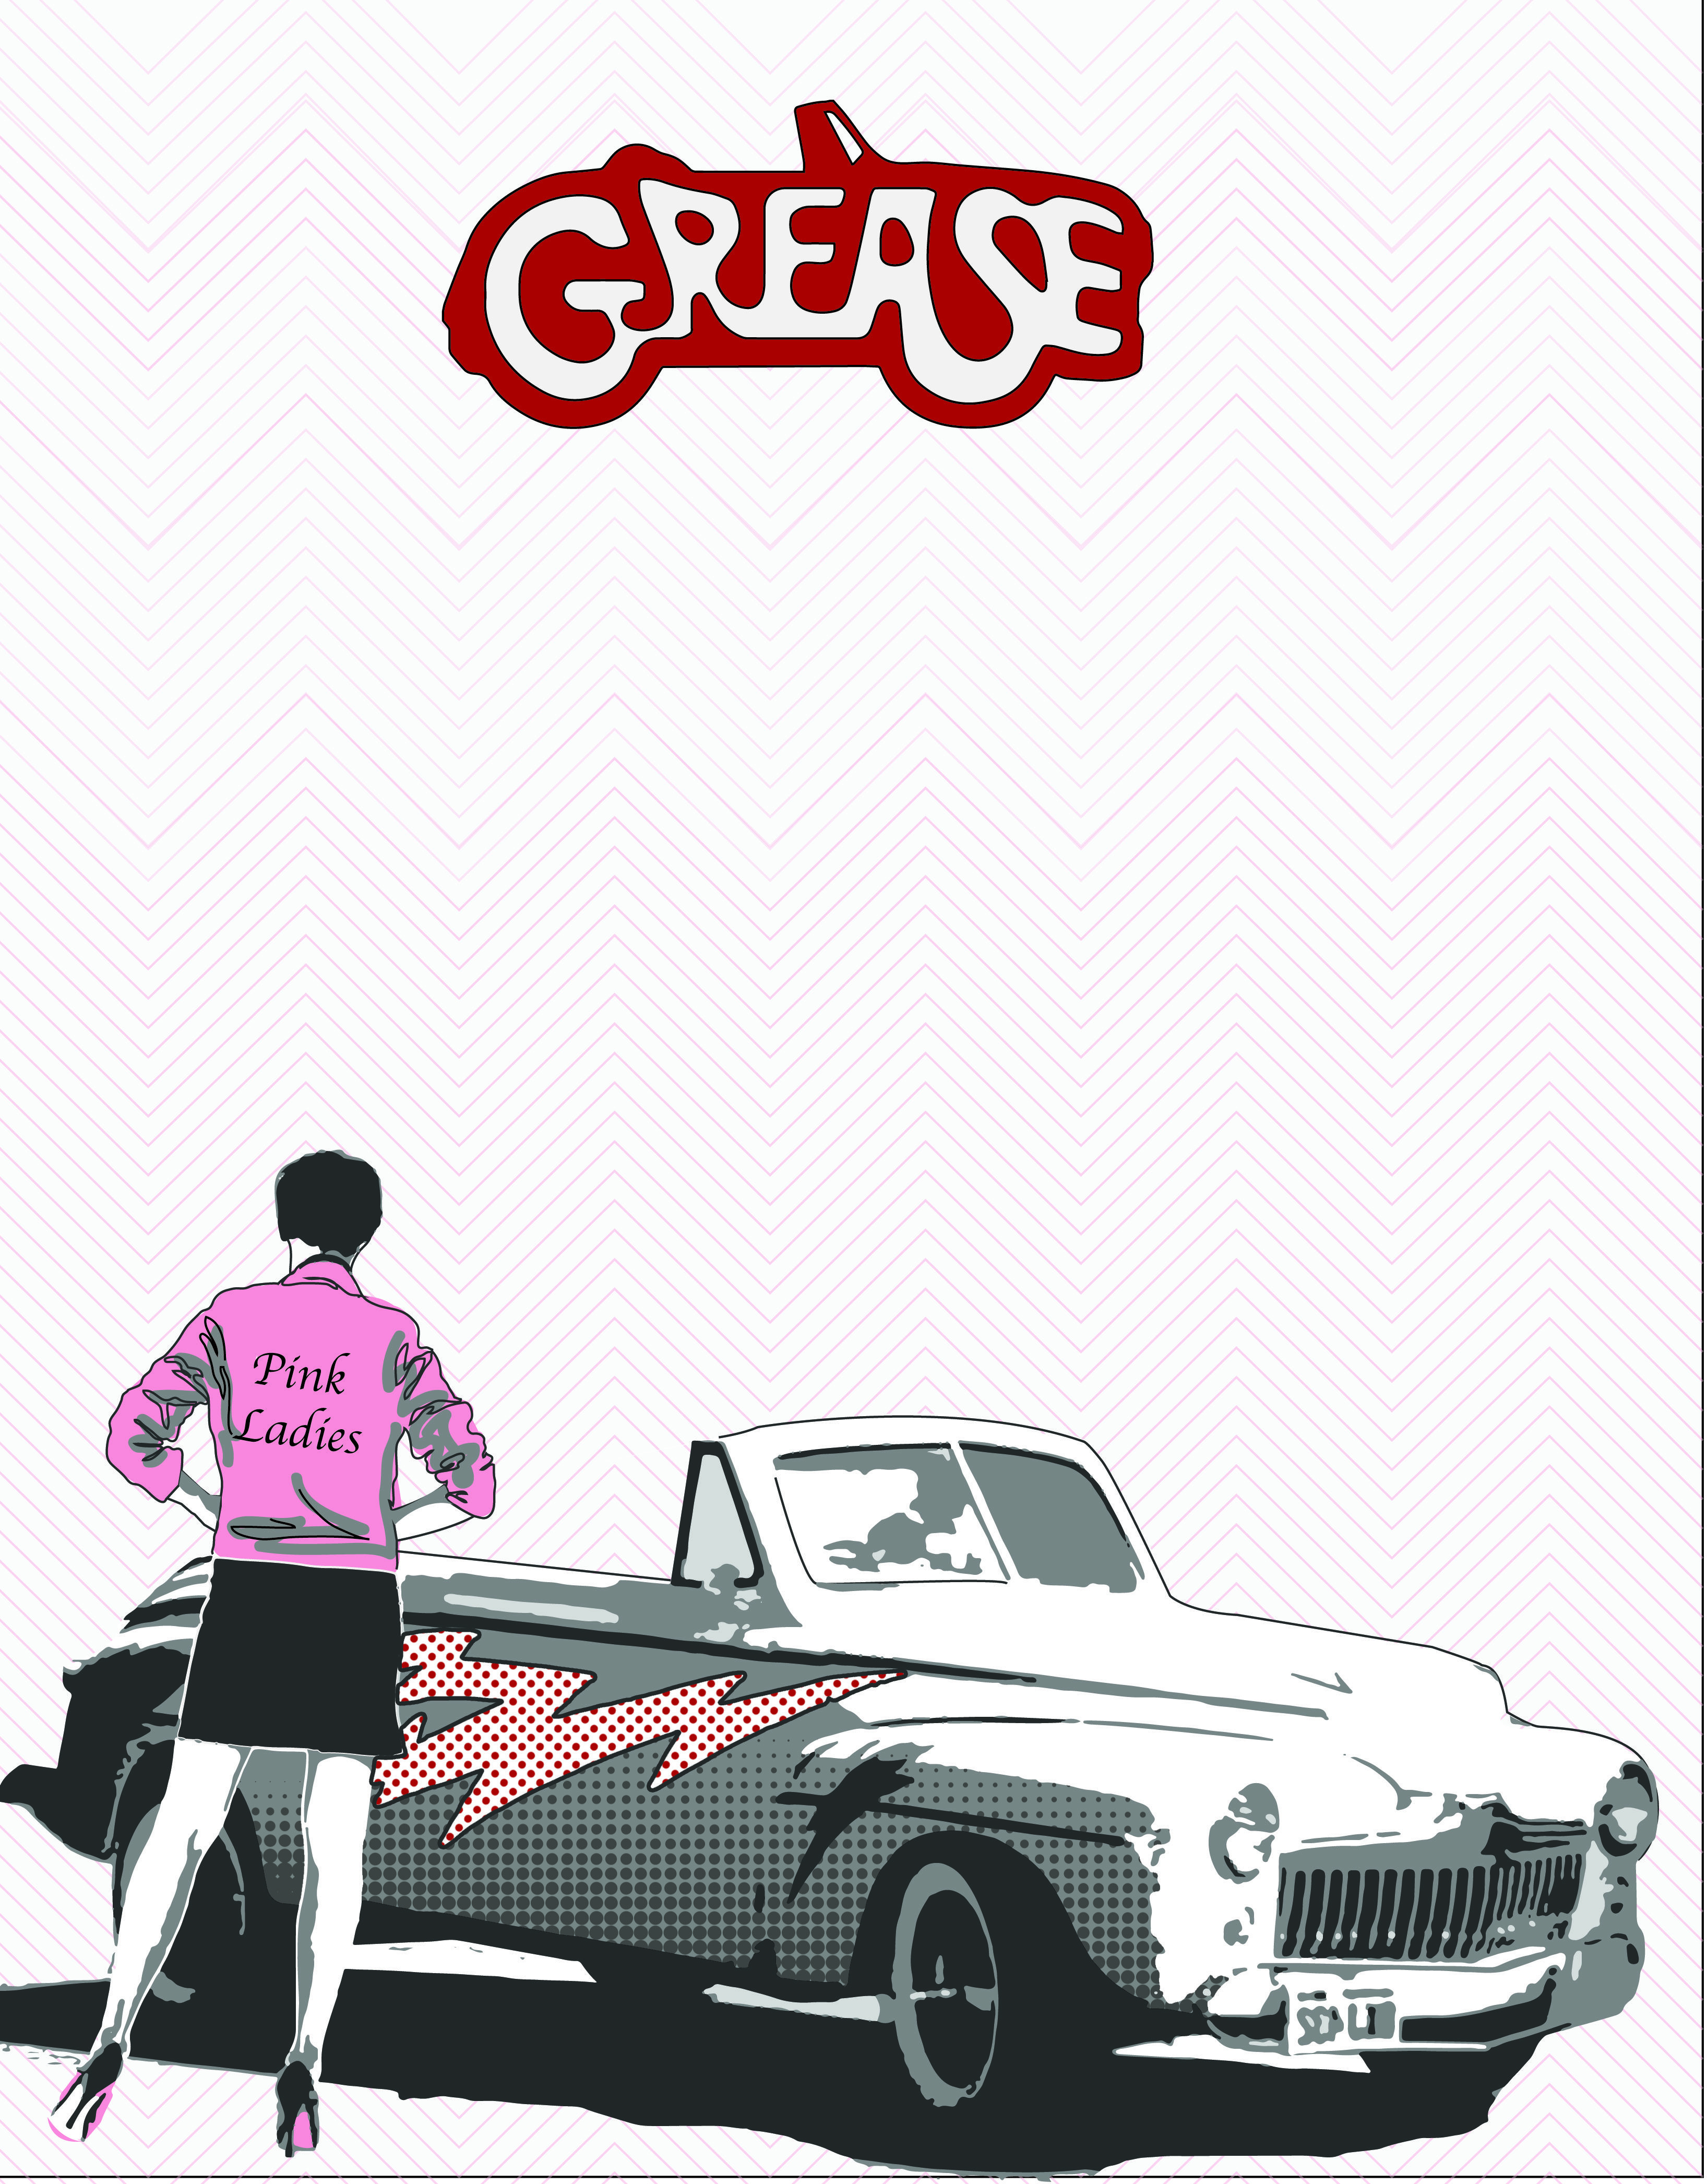 Grease Poster 3 More Color Then 2 With A Very Light Chevron Pattern In The Background Grease Movie Grease Musical Grease